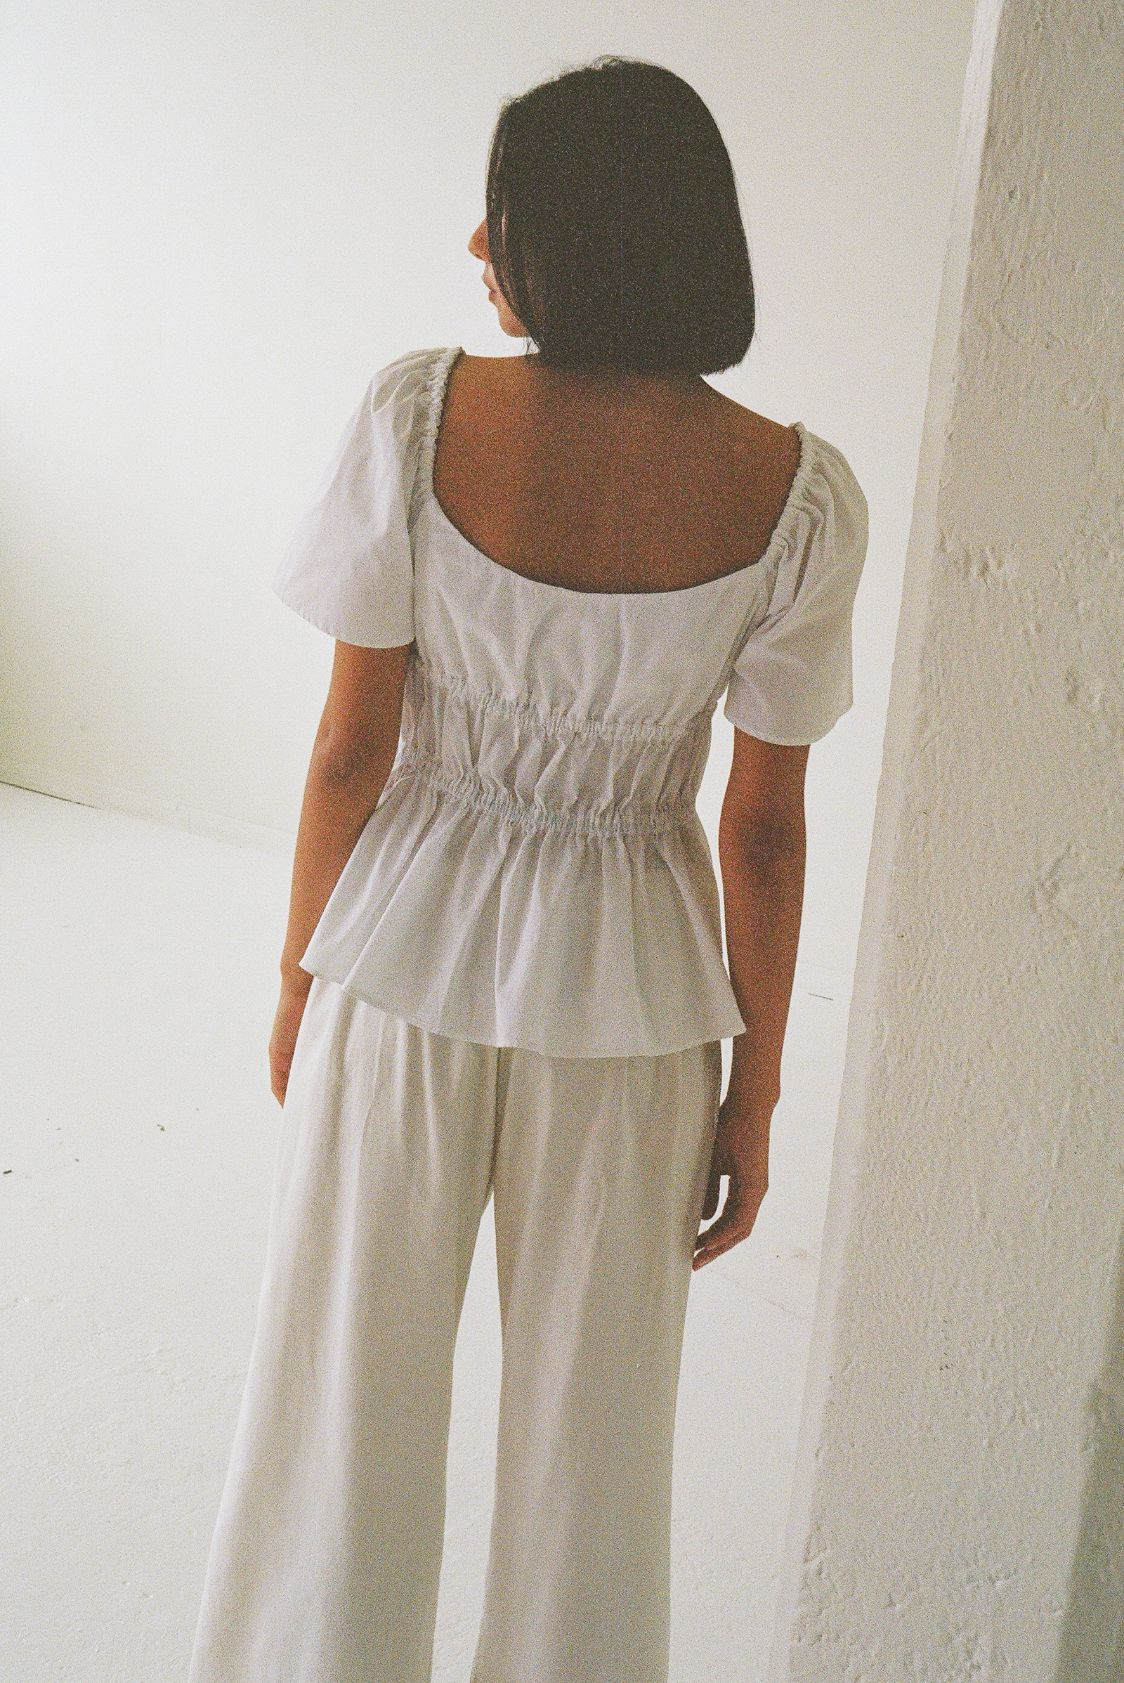 Bodice top white - New Ellis Label - Womens clothing - Made to order NZ_0005_83110019